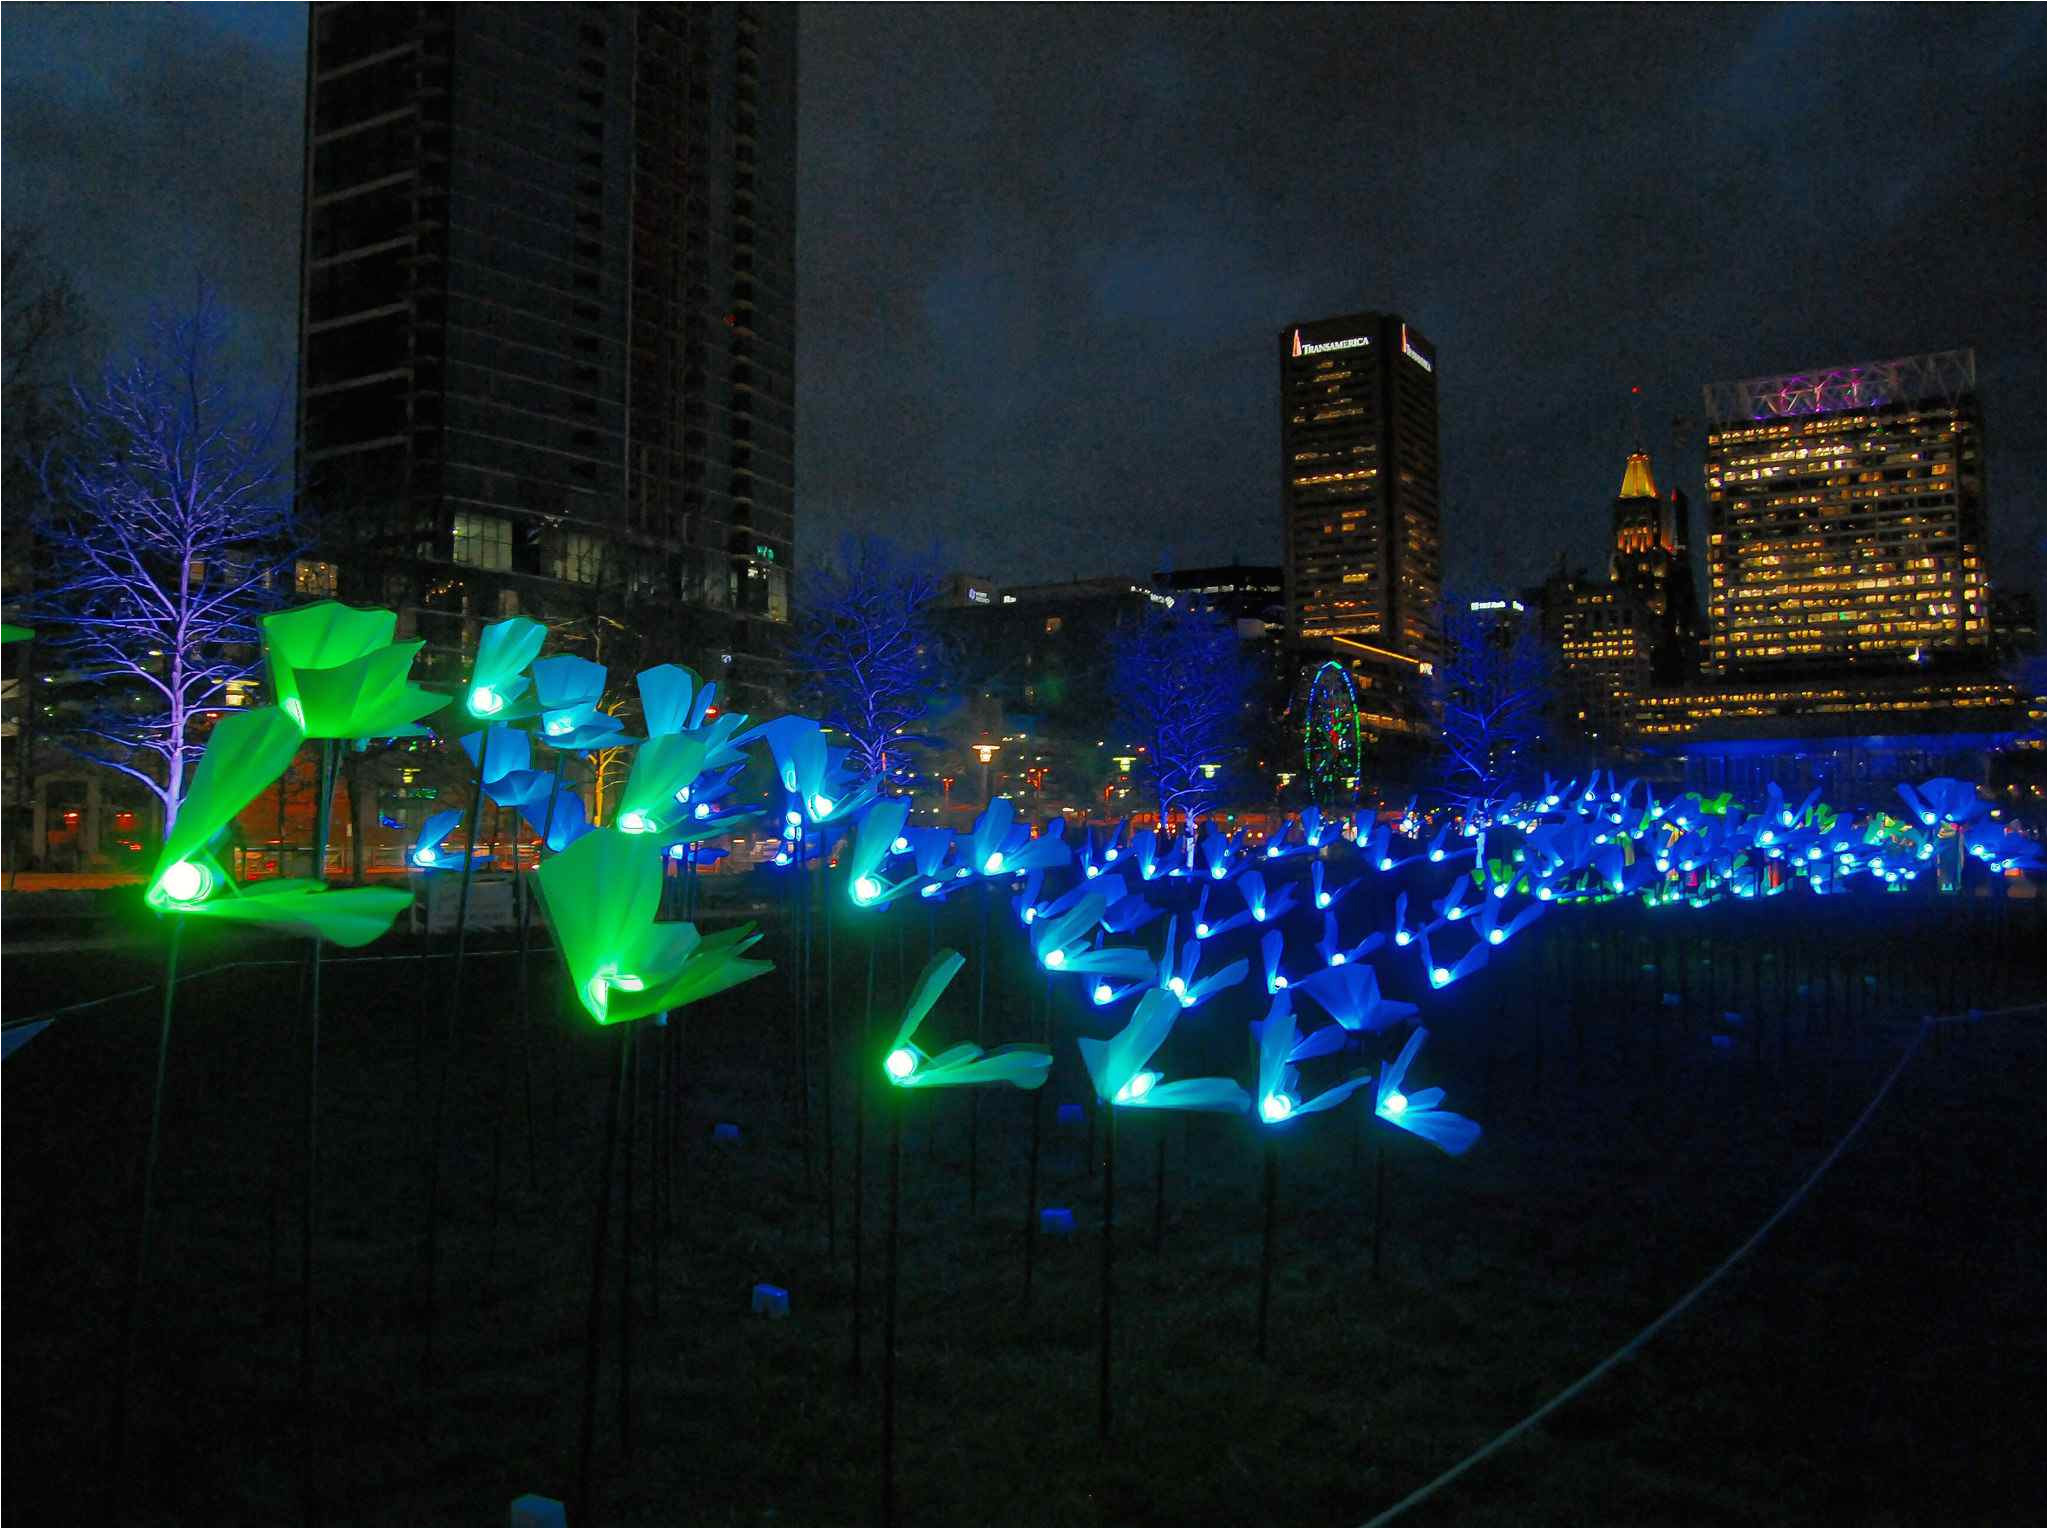 city light festival in baltimore maryland